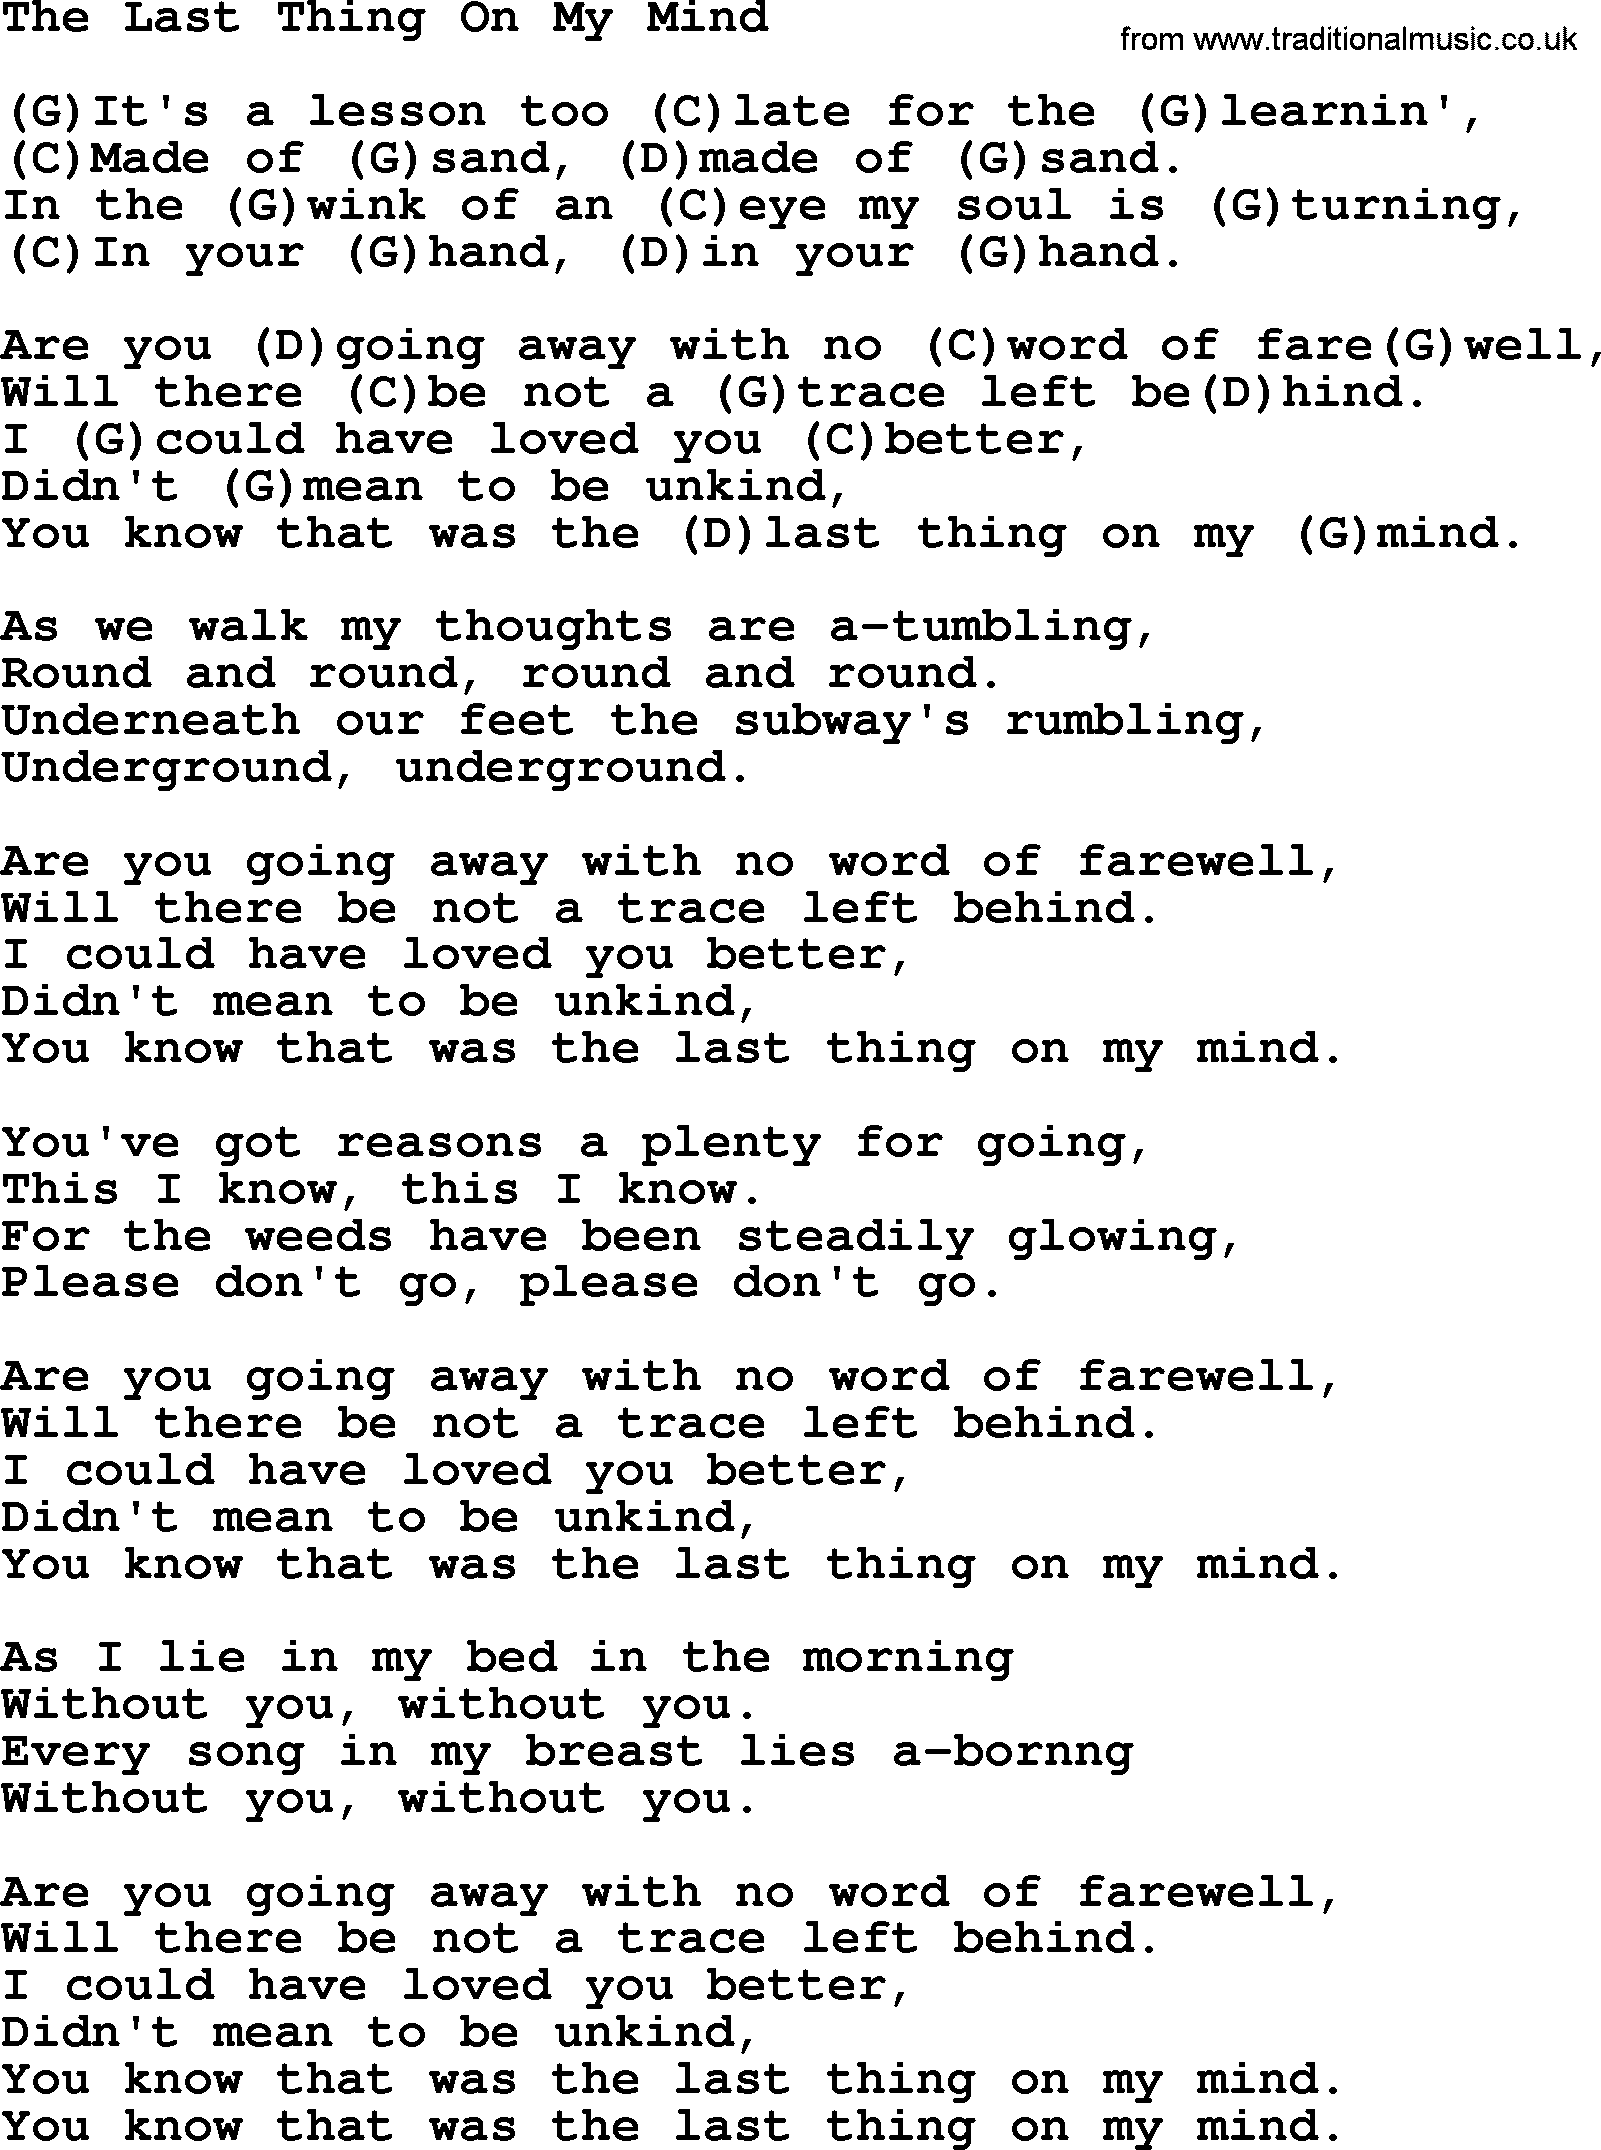 The Last Thing On My Mind By Tom Paxton Lyrics And Chords